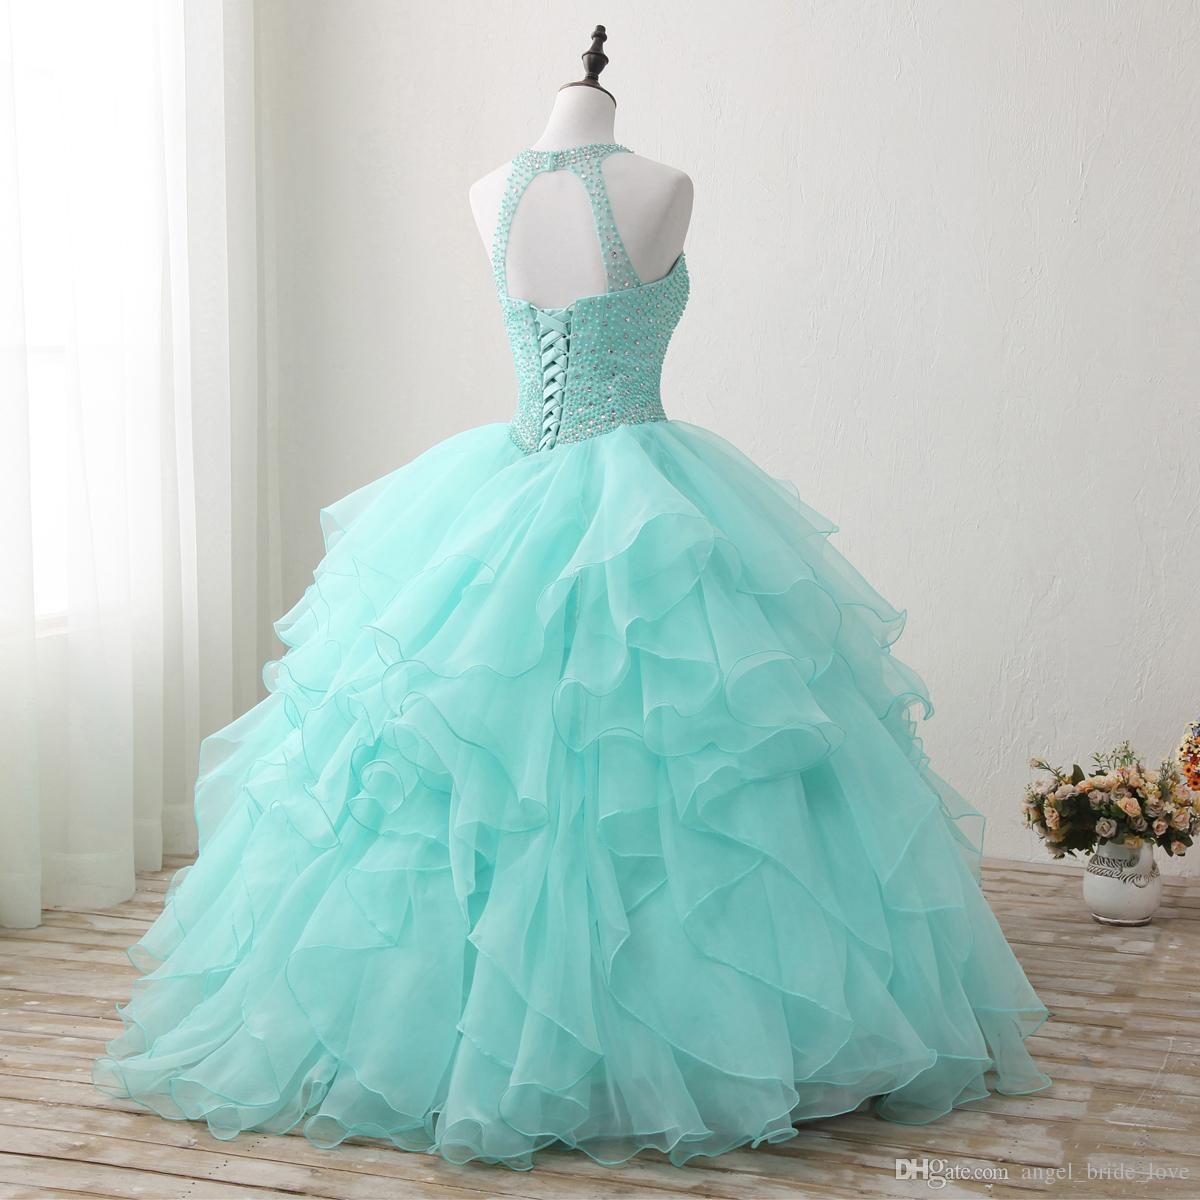 2018 New High Qullity Mint Green Ball Gown Quinceanera Dresses Beaded Prom Sweet 16 Dress Plus Size Lace Up Vestido De 15 Ano Q72